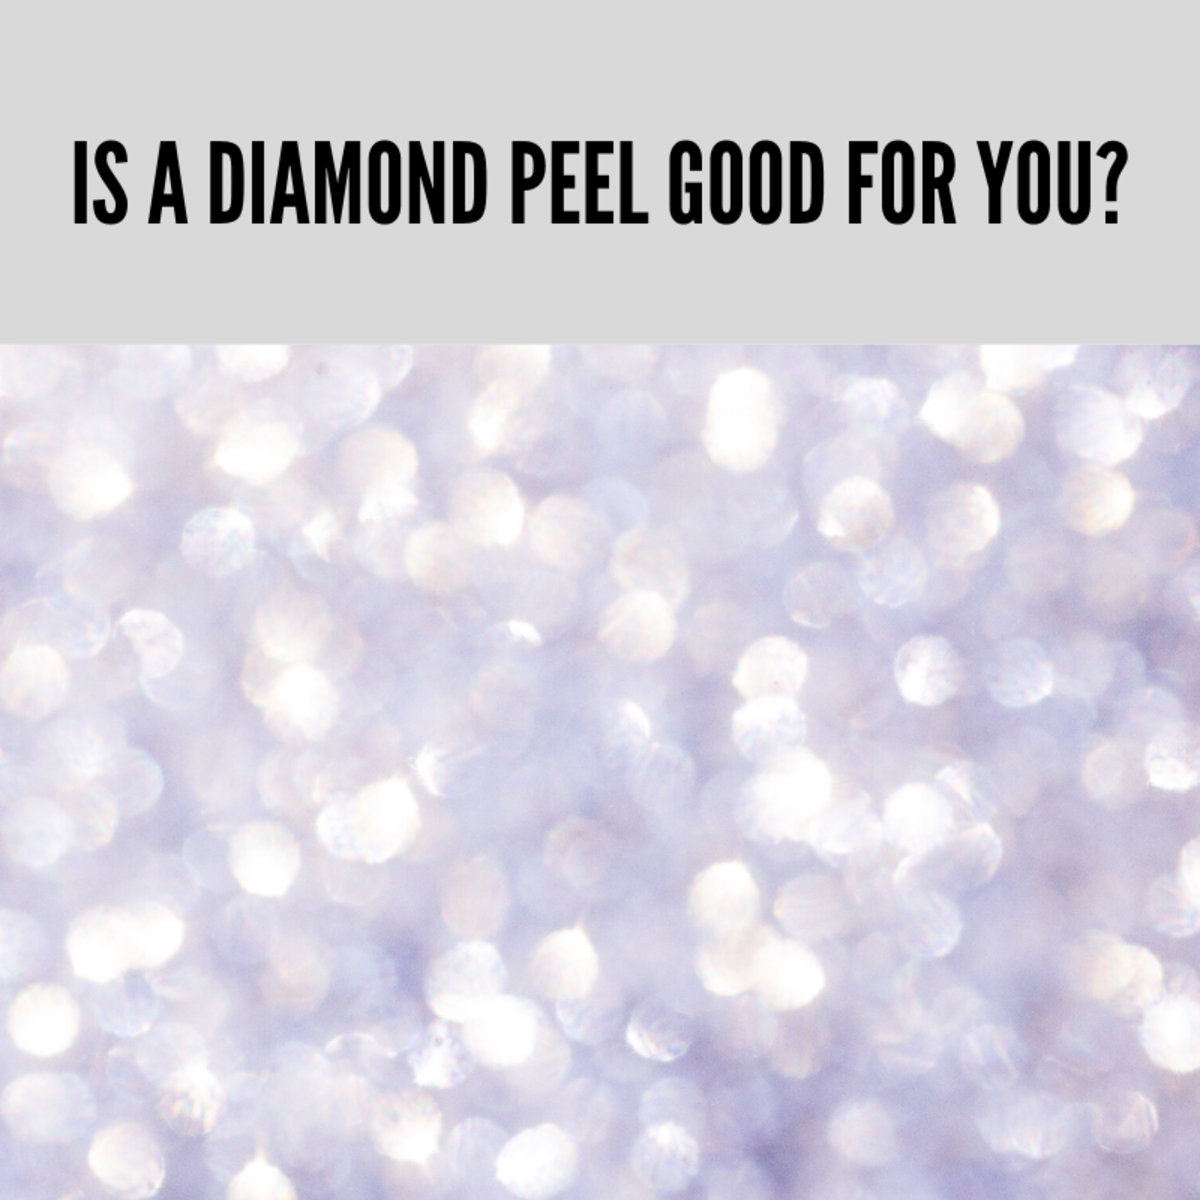 Diamond Peel Risks and Benefits